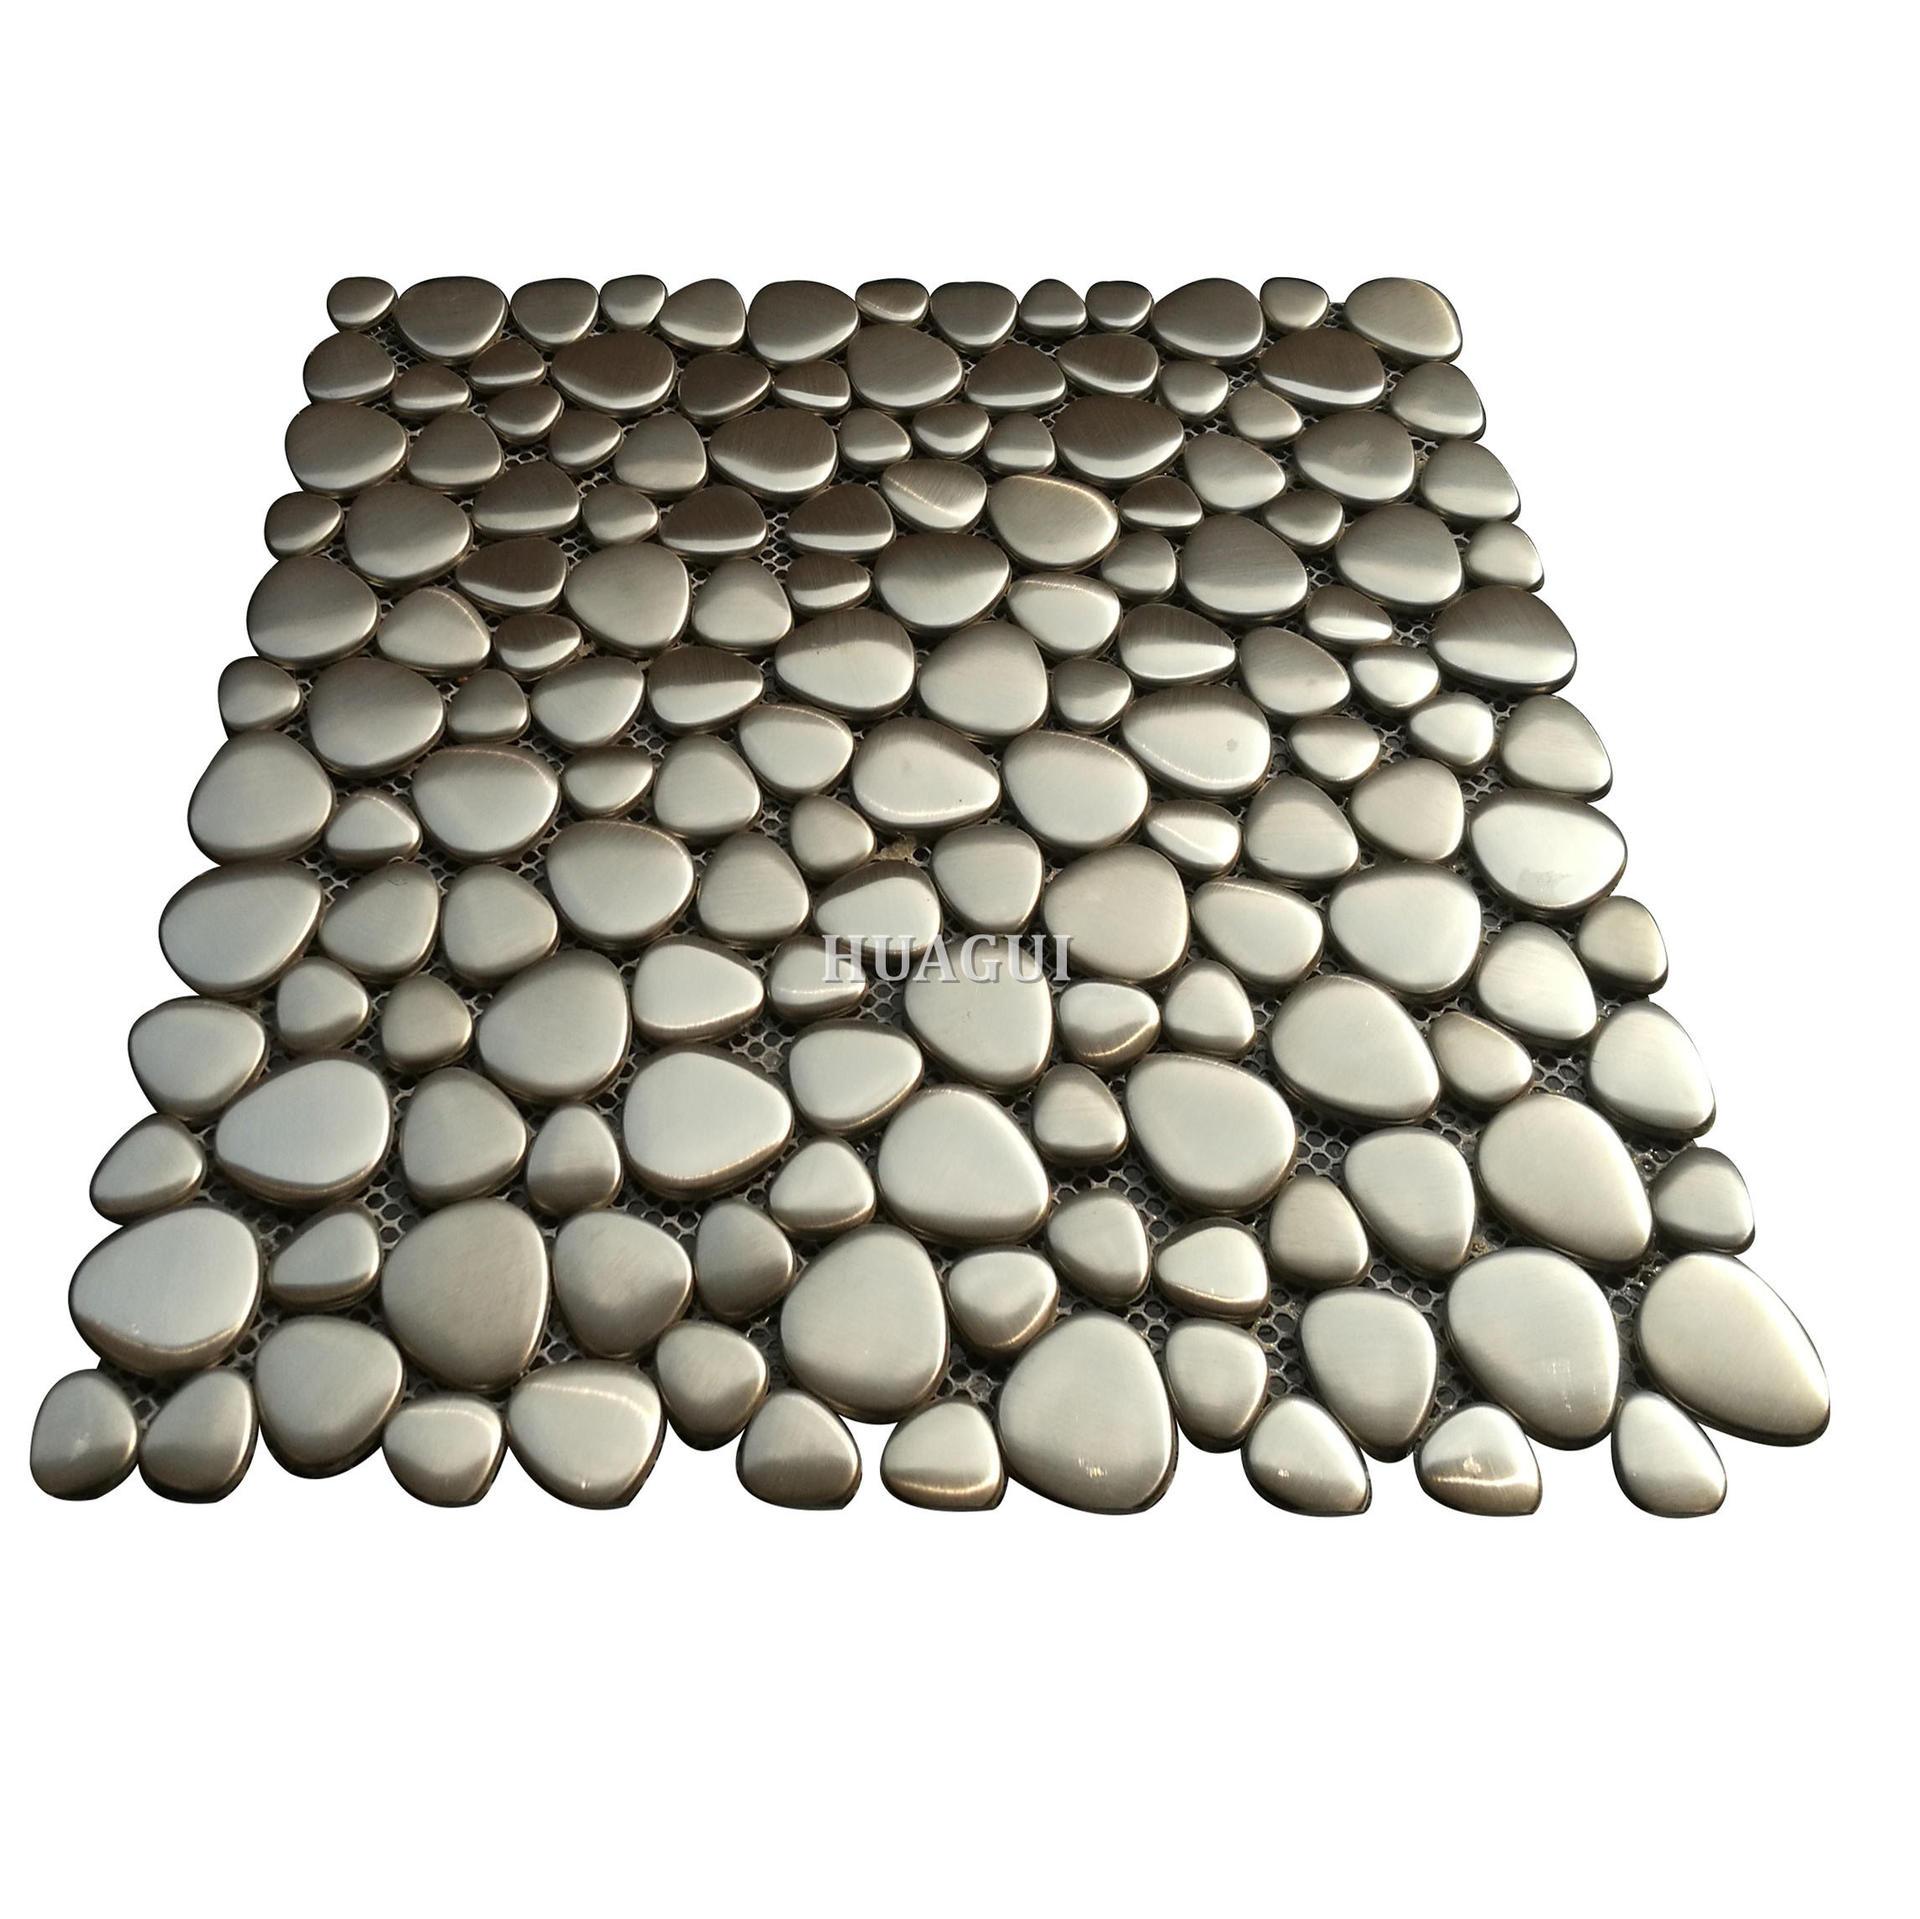 12''x12'' multi rounds stainless steel pebble mosaic tile in UK